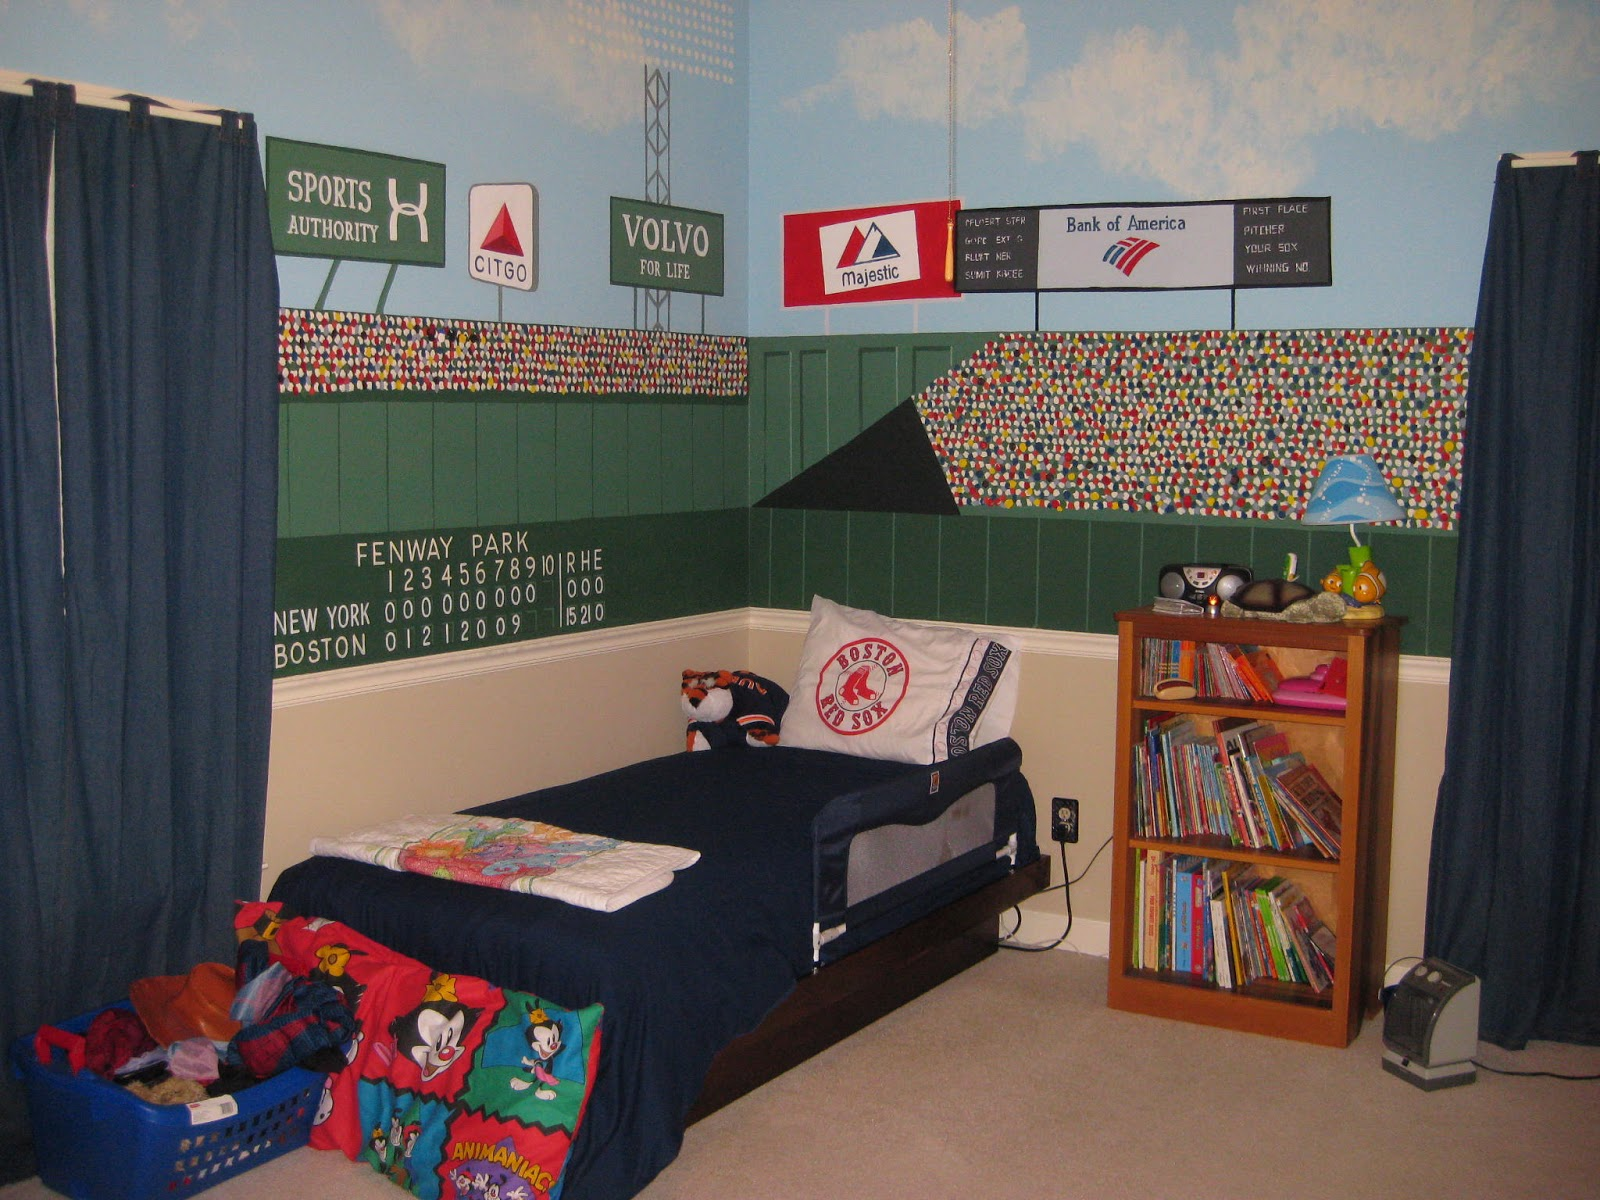 A disney mom 39 s thoughts hidden mickey 39 s in fenway park for Audience wall mural